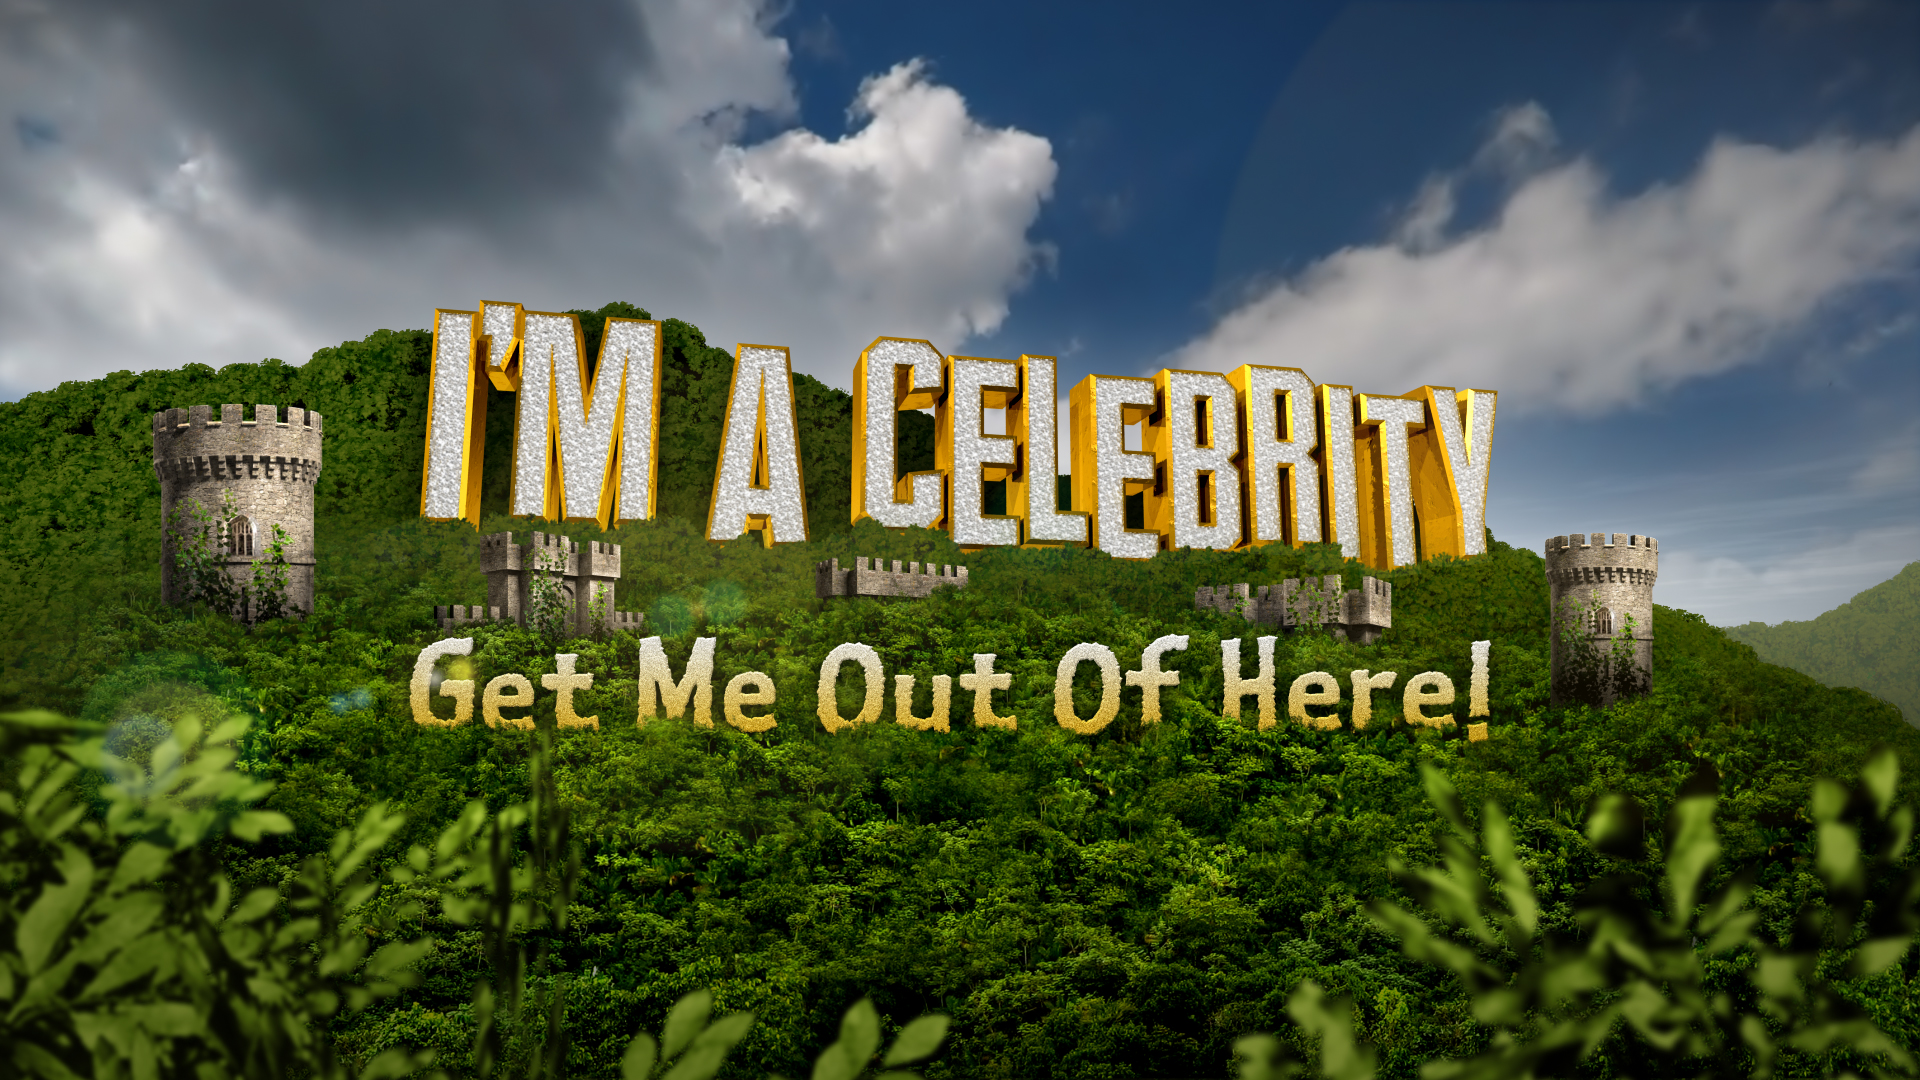 I m a celebrity 2021 betting line nfl week 17 betting odds 2021 july 2021